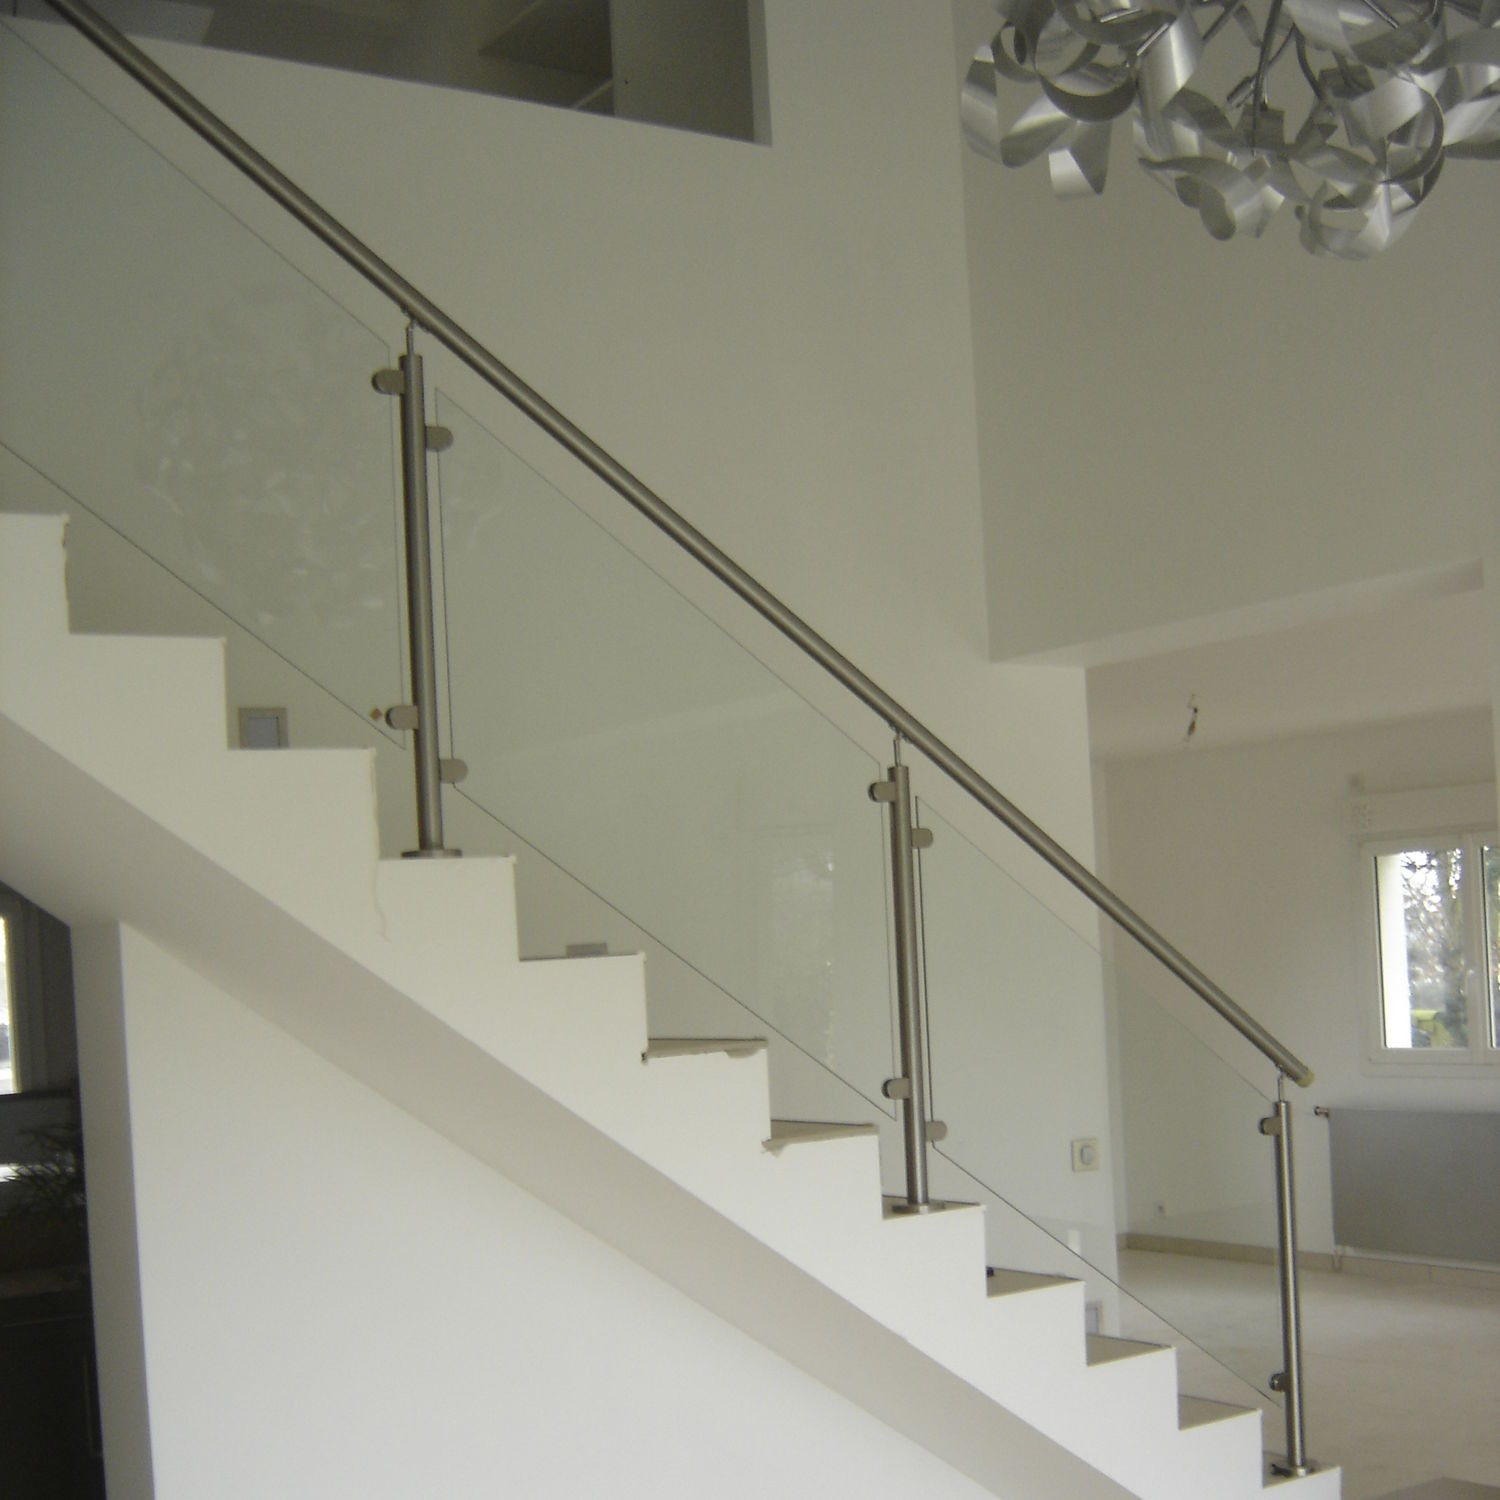 Stainless steel railing / glass panel / indoor / for stairs ...